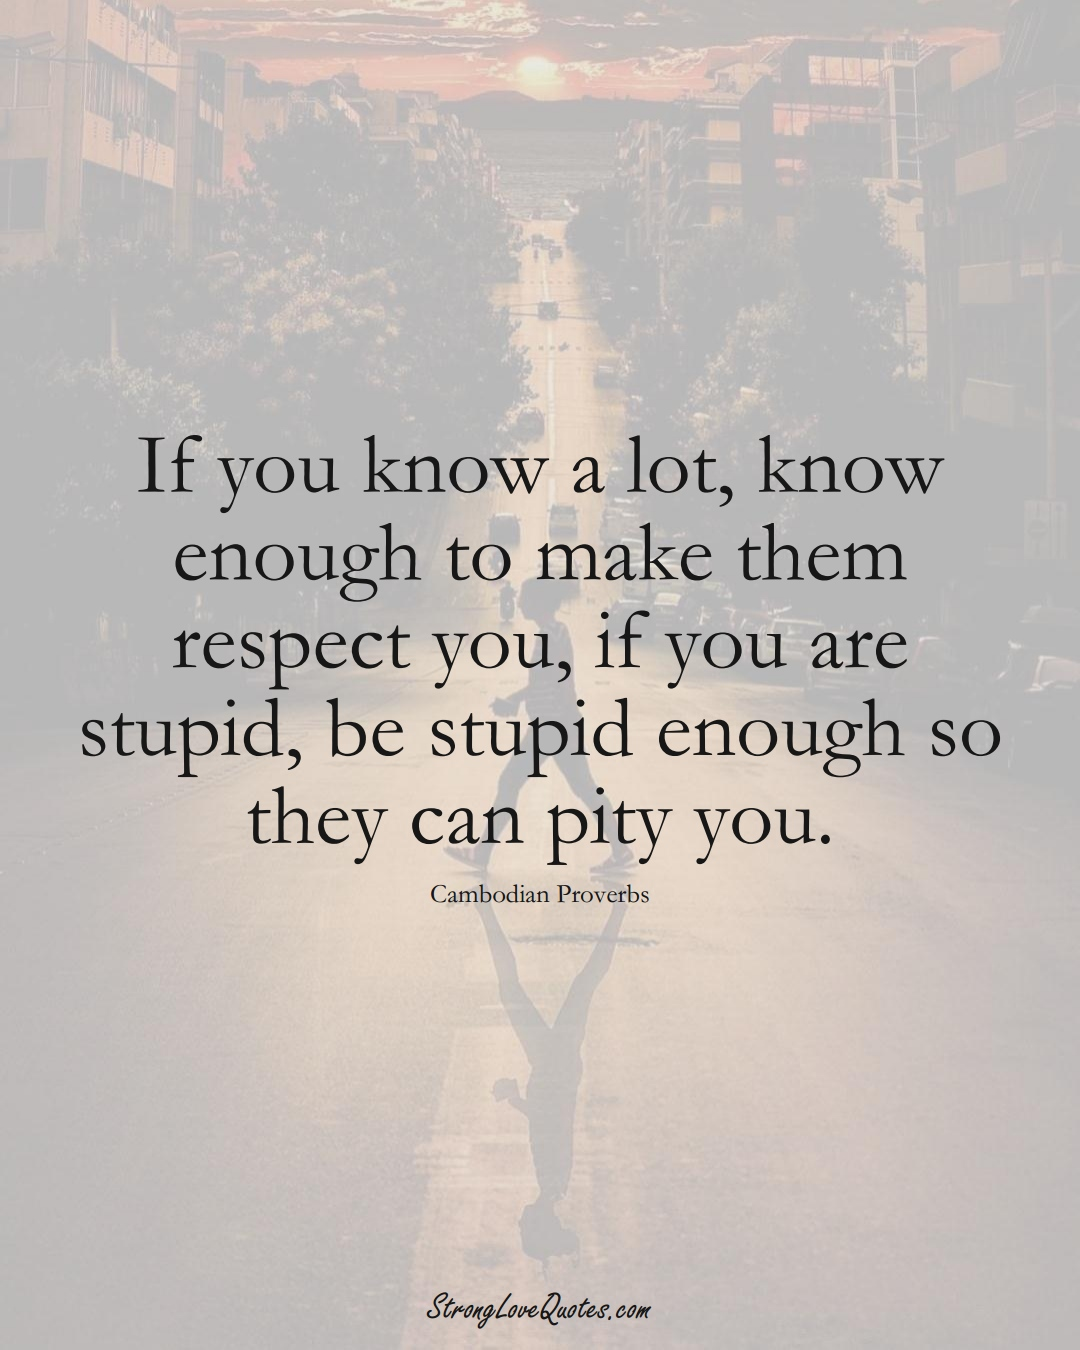 If you know a lot, know enough to make them respect you, if you are stupid, be stupid enough so they can pity you. (Cambodian Sayings);  #AsianSayings